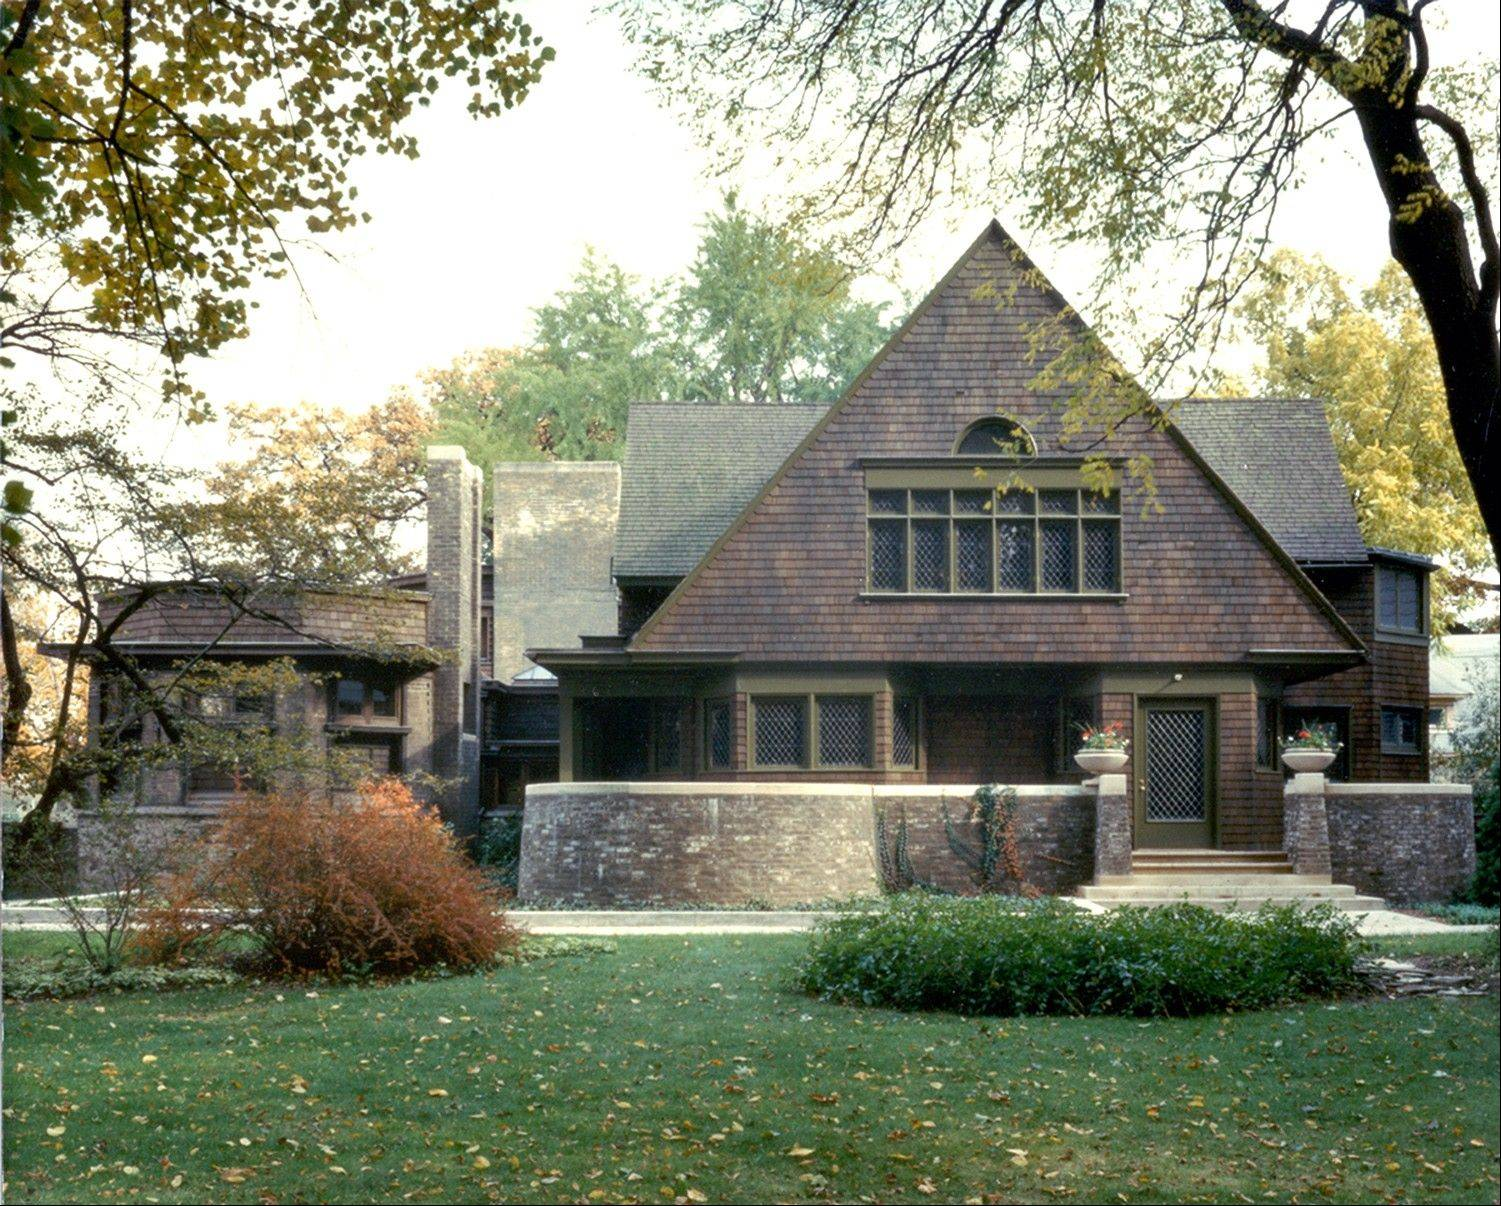 The exterior of the home side of the Frank Lloyd Wright Home and Studio, which was built in 1889 and went through several renovations. This is where the famous architect developed Prairie style architecture.